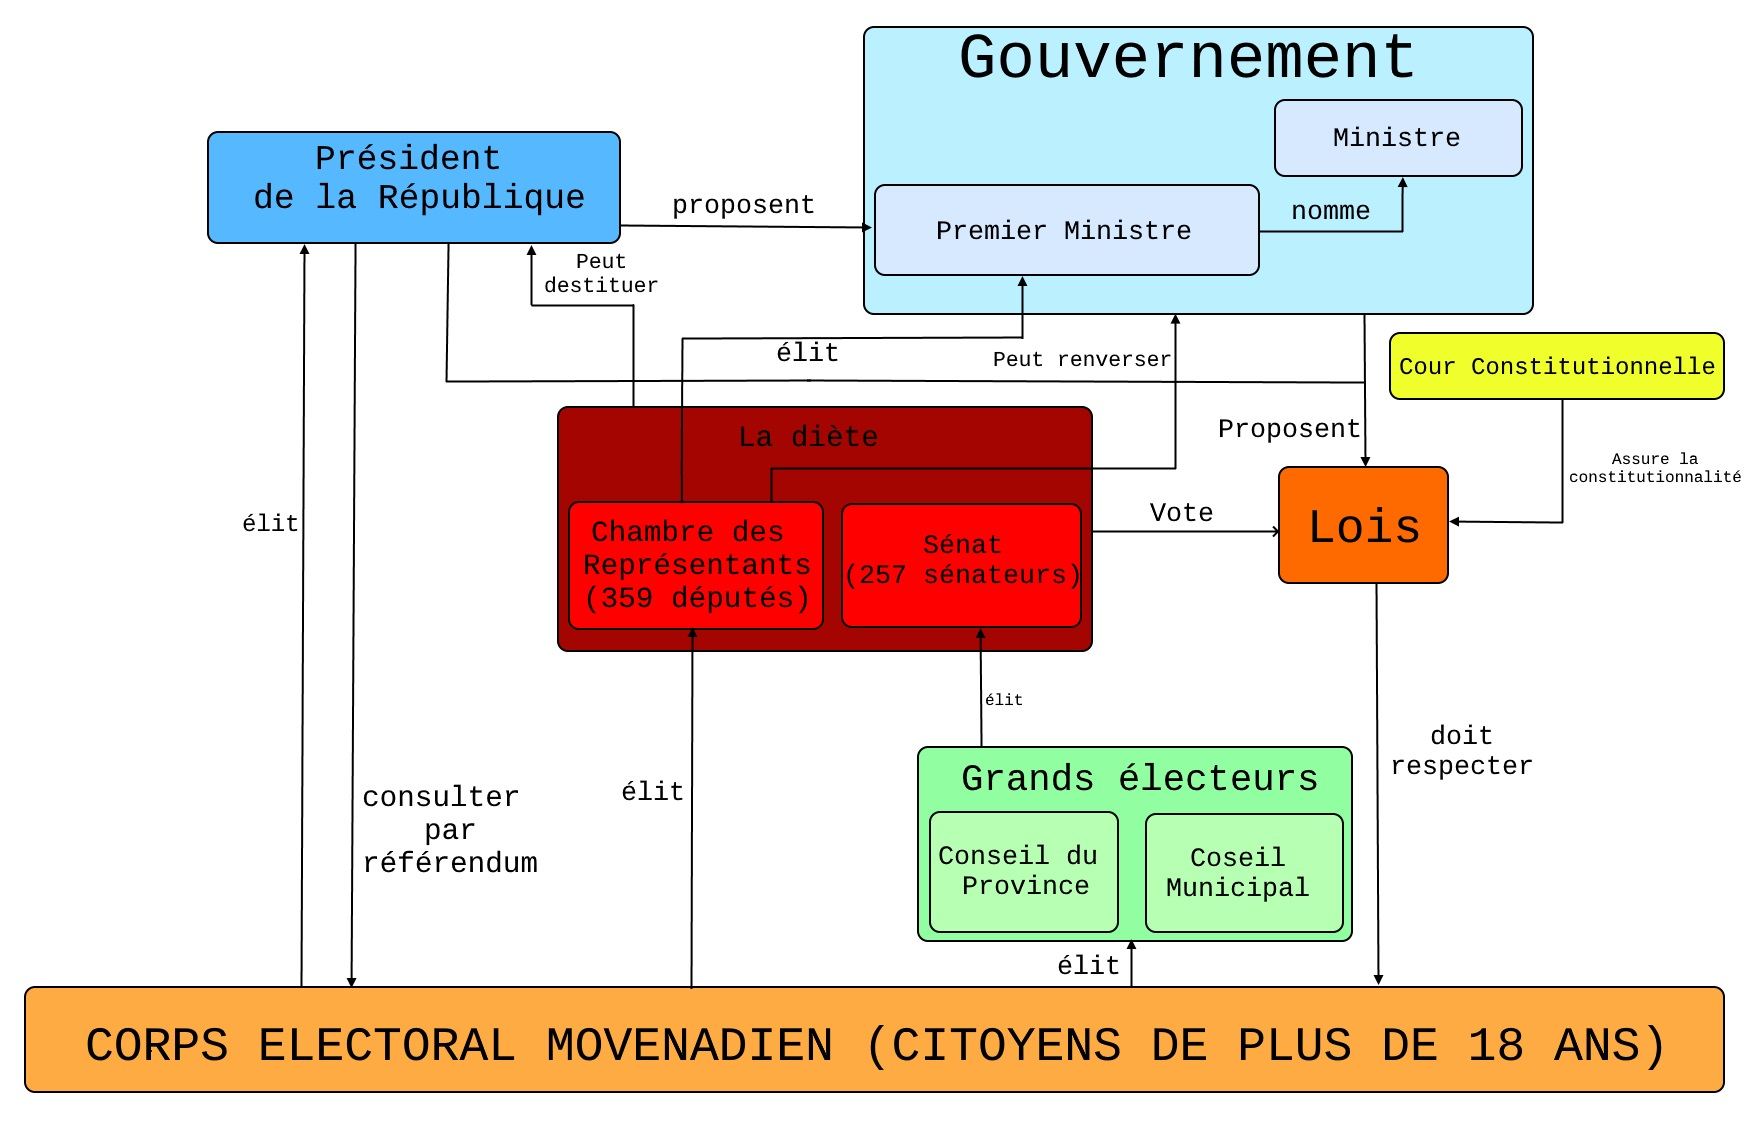 République de la Movenadie Syster10